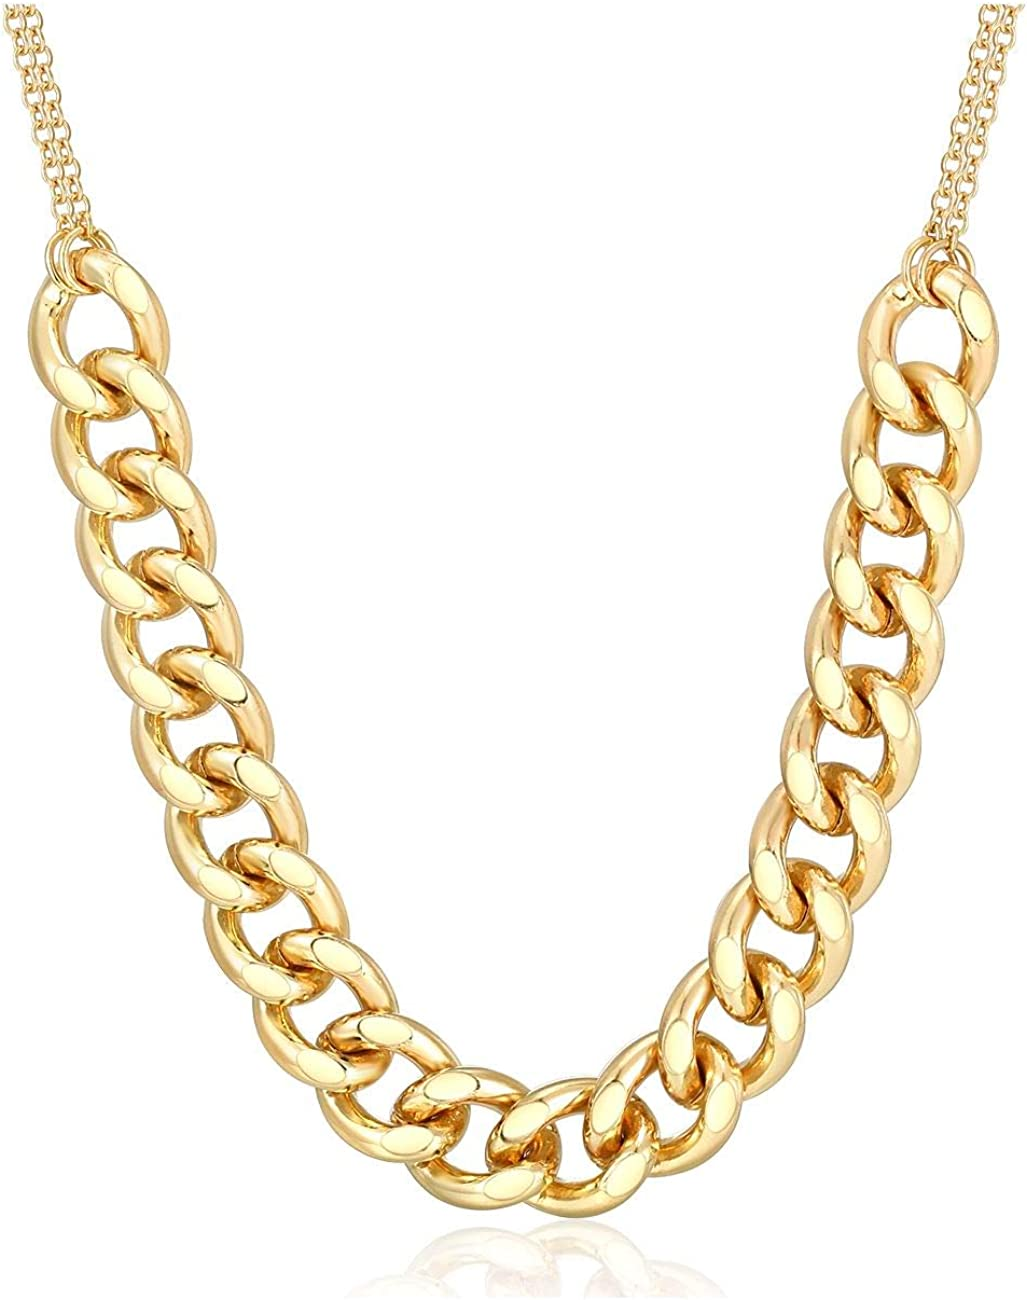 Chains Necklace